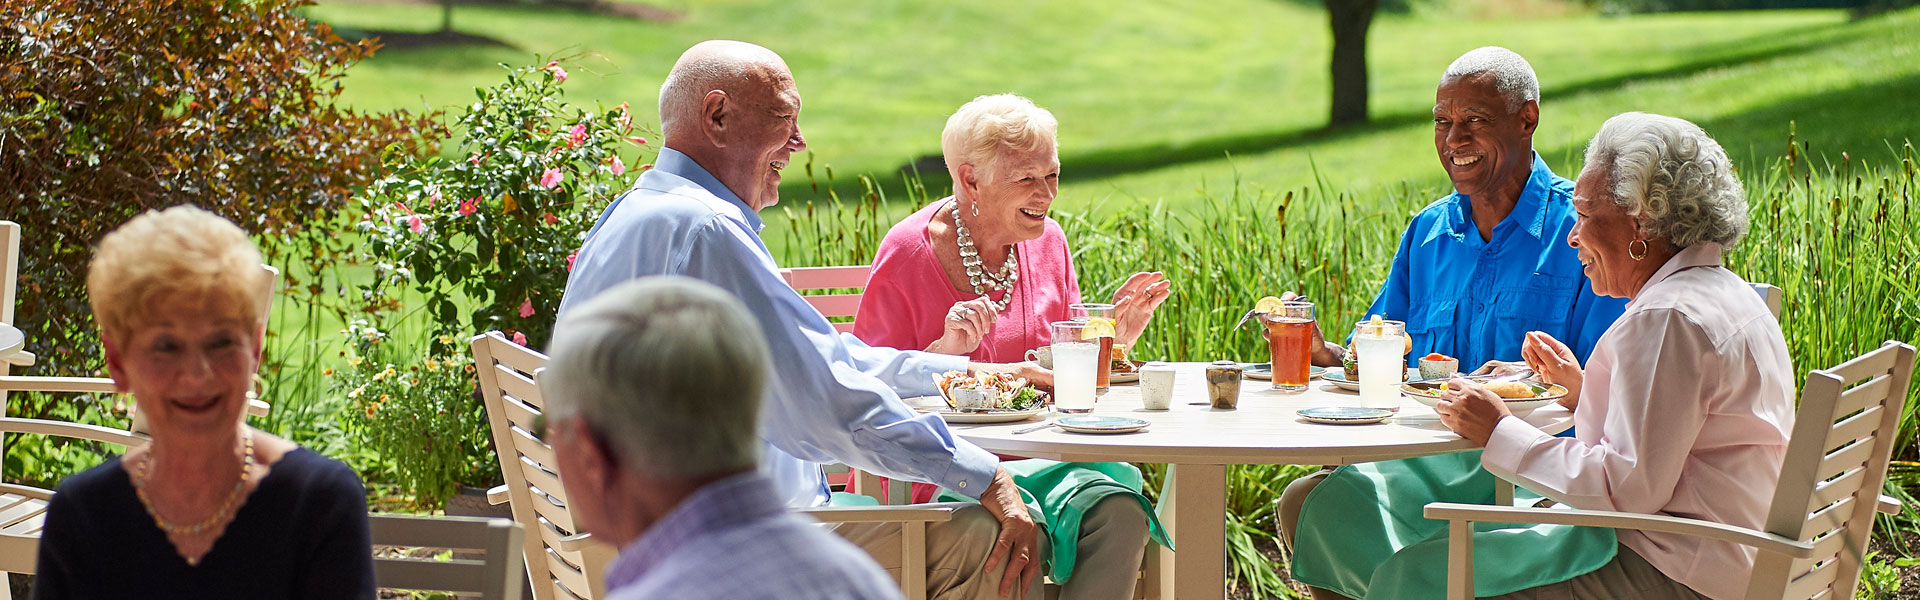 A group of residents at Friendship Village of South Hills sitting outside and enjoying a meal